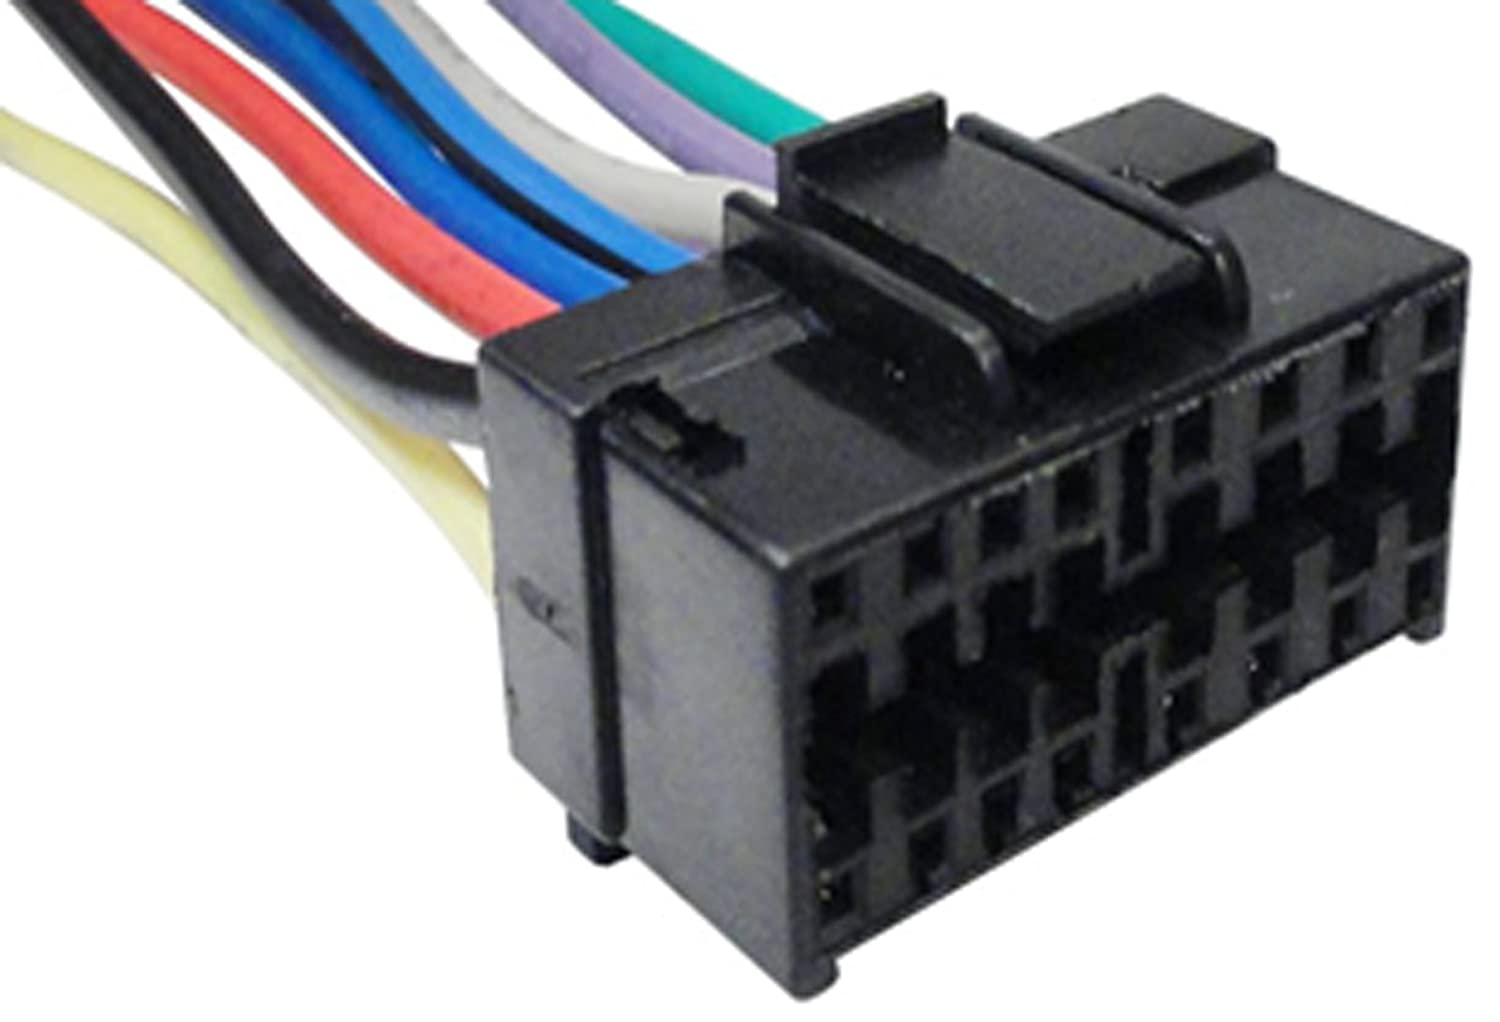 61PGr49b4wL._SL1500_ amazon com sony wiring harness 16 pin copper sy16 automotive sony 16 pin wiring harness at gsmx.co